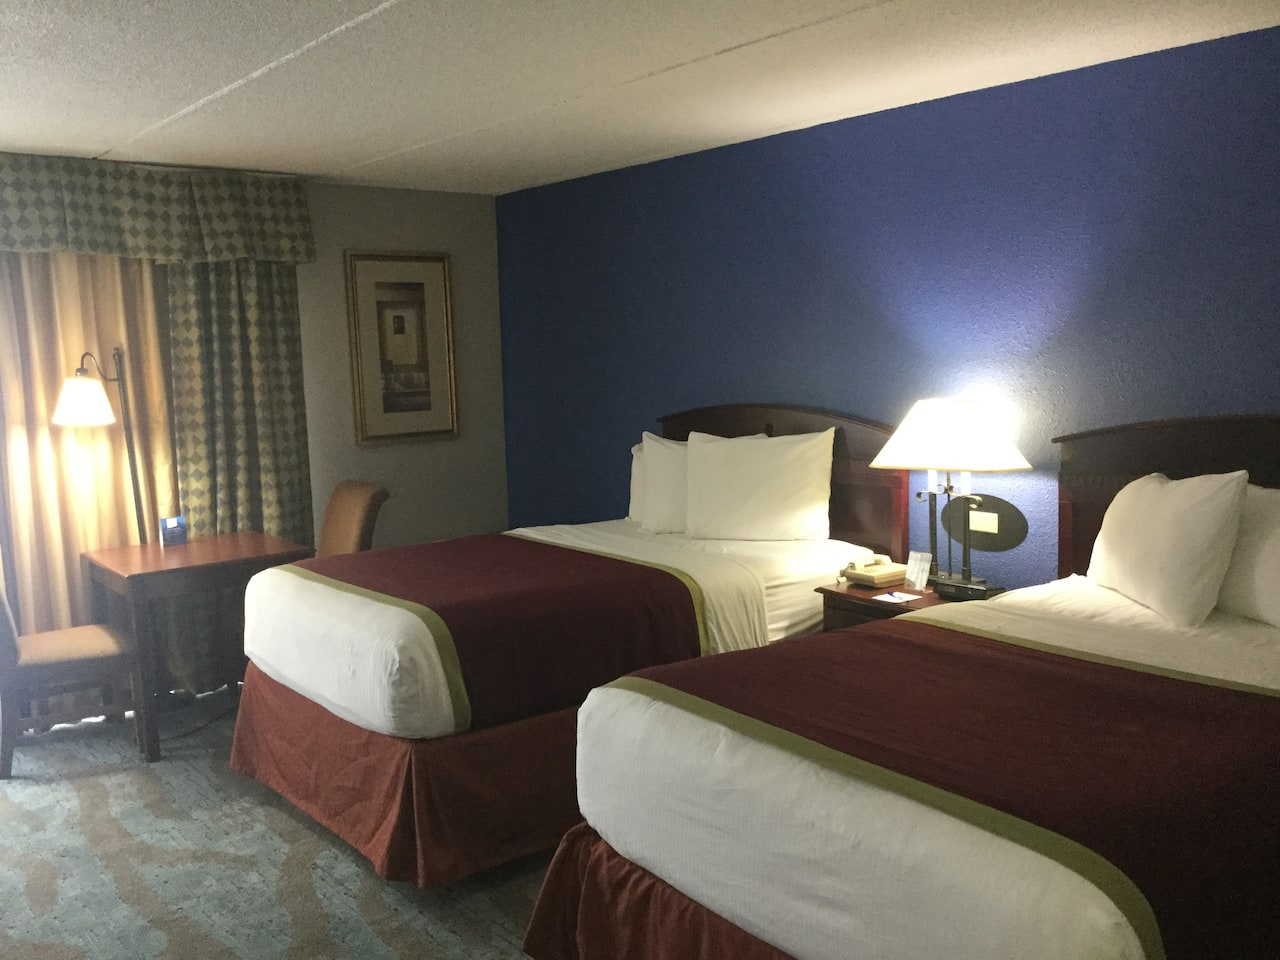 at the Baymont Inn & Suites Michigan City in Michigan City, Indiana